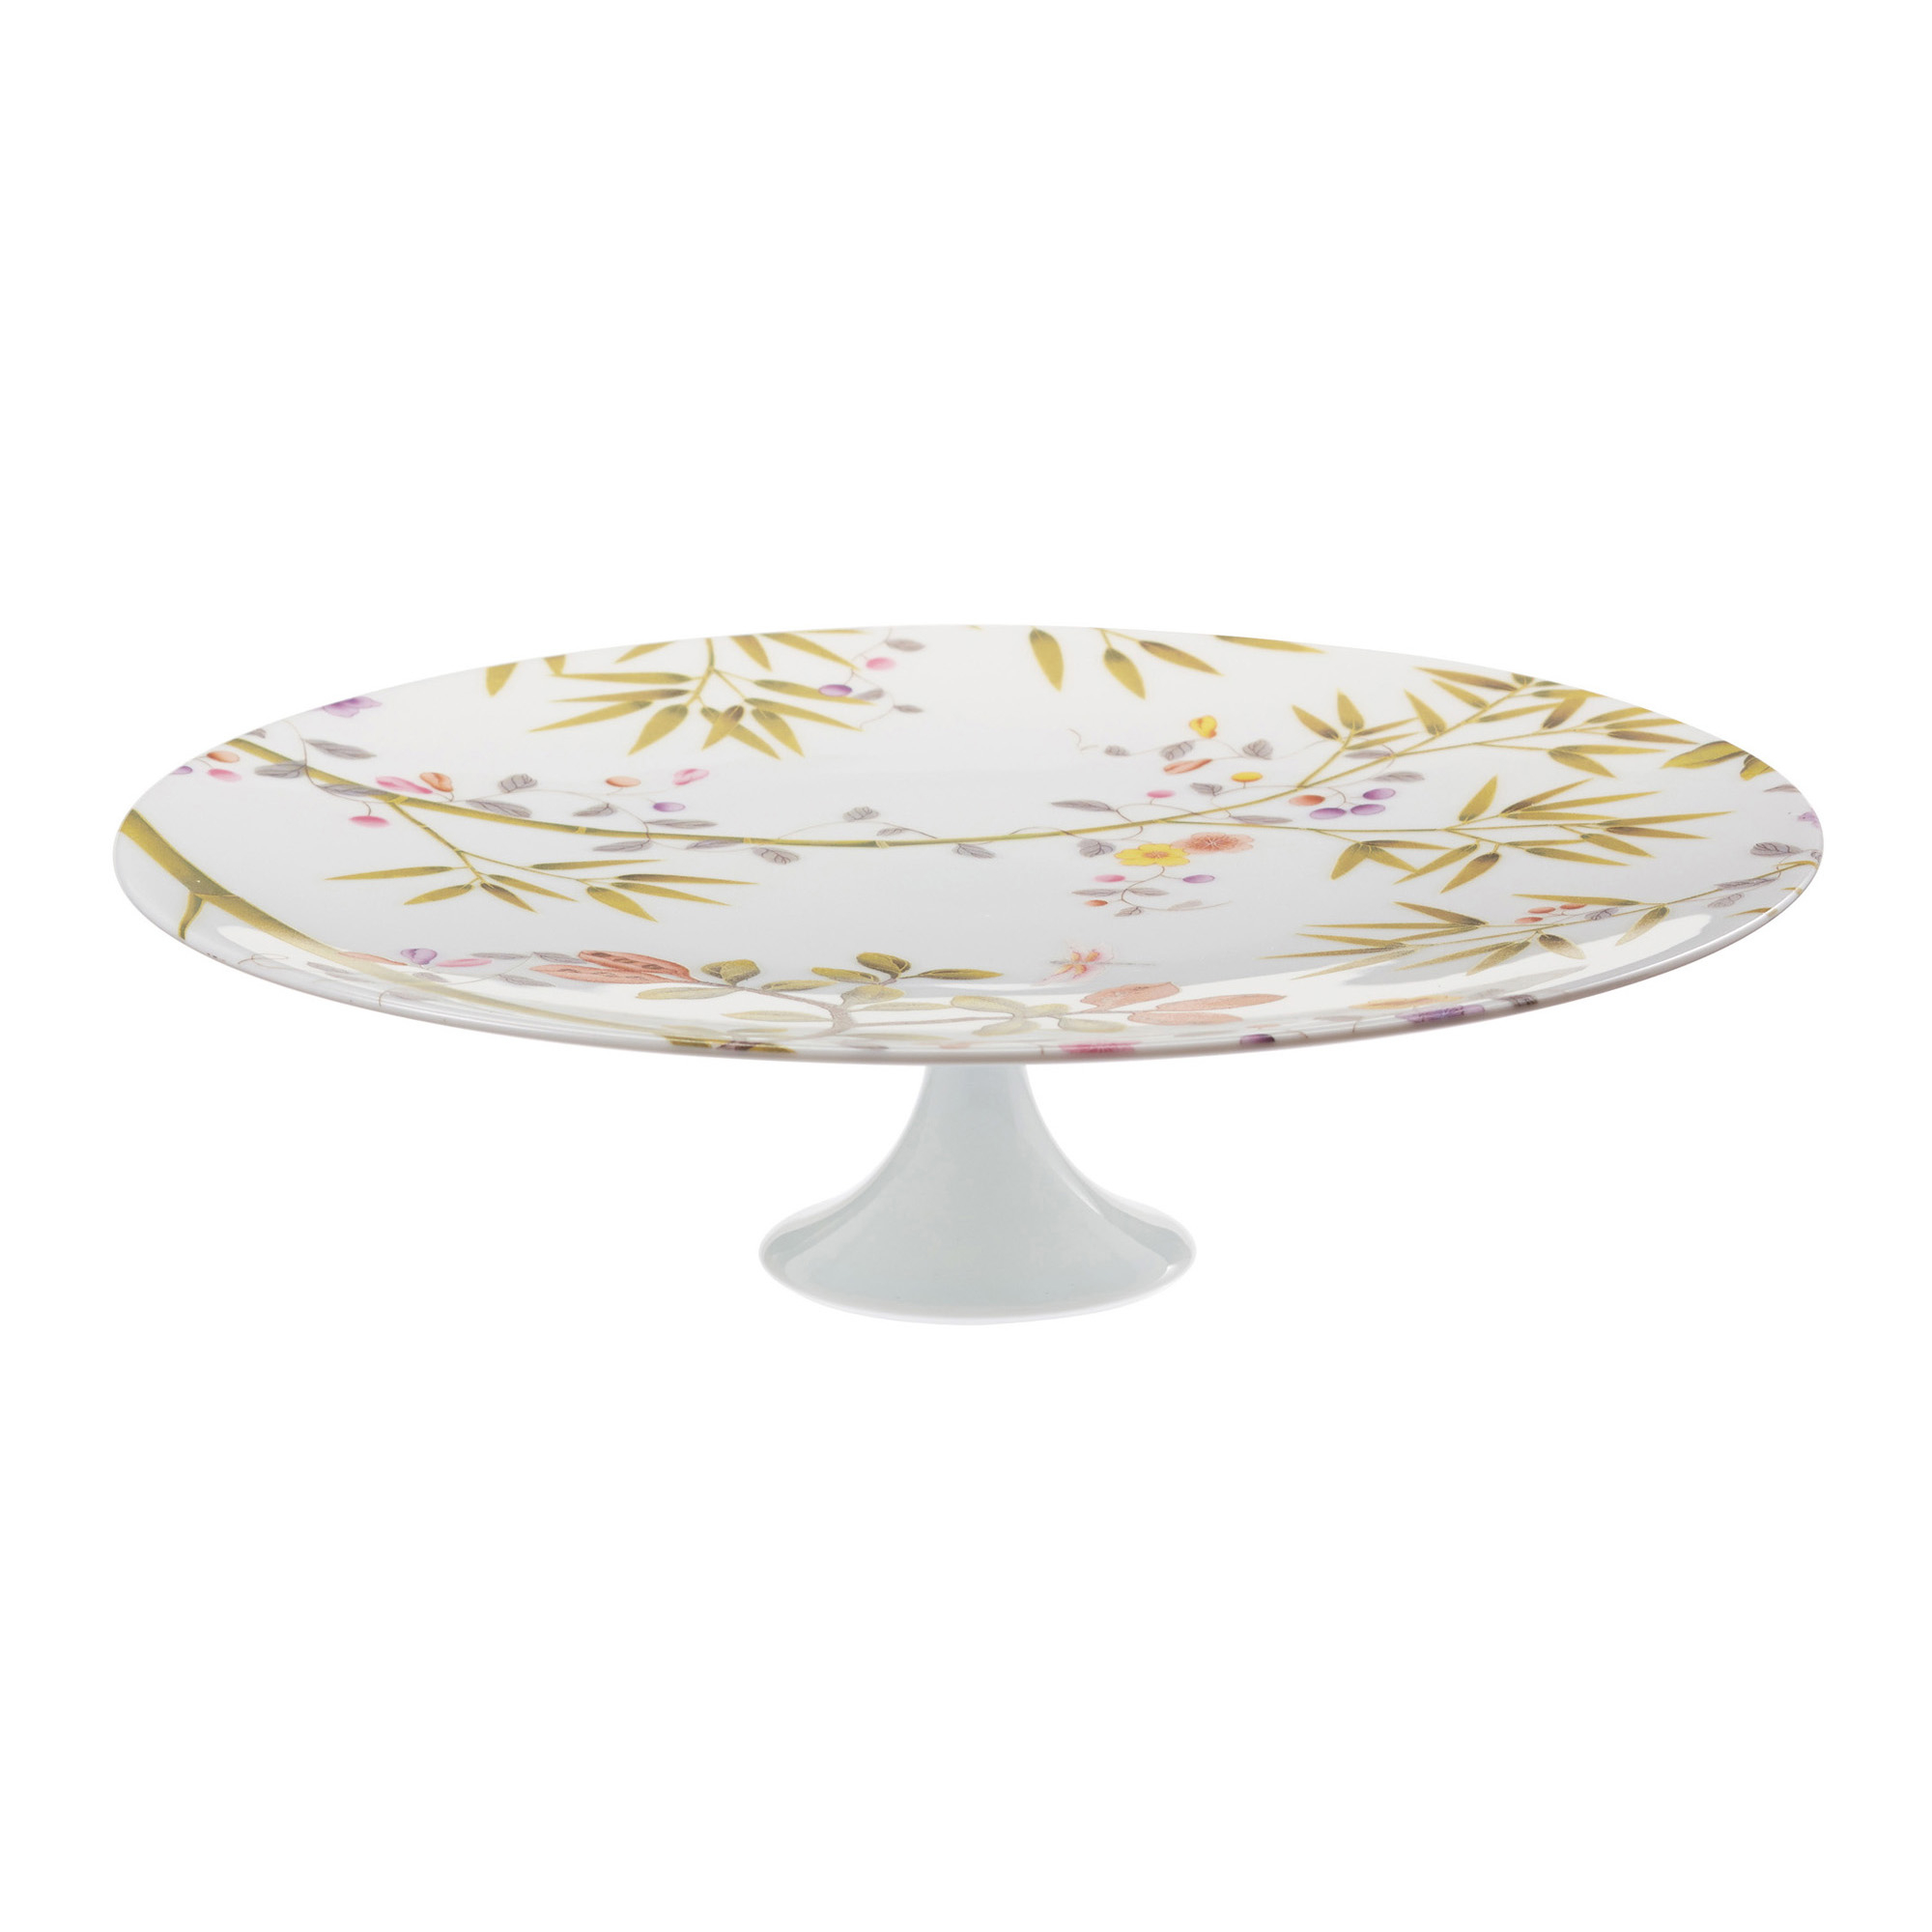 Raynaud Paradis Petit Four Stand, Large White